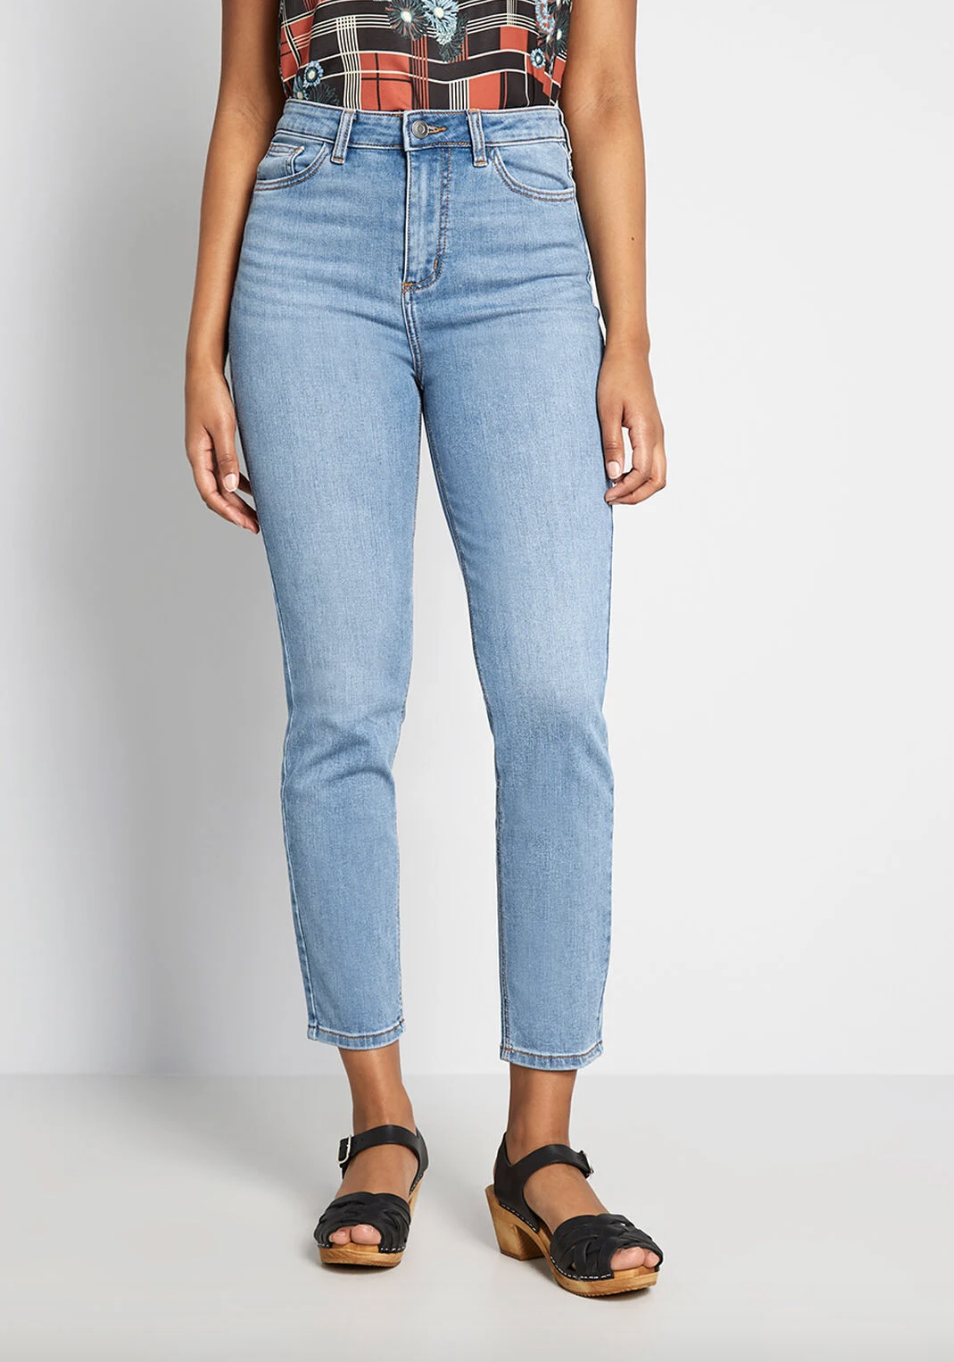 A model in lightwash high waist ankle jeans